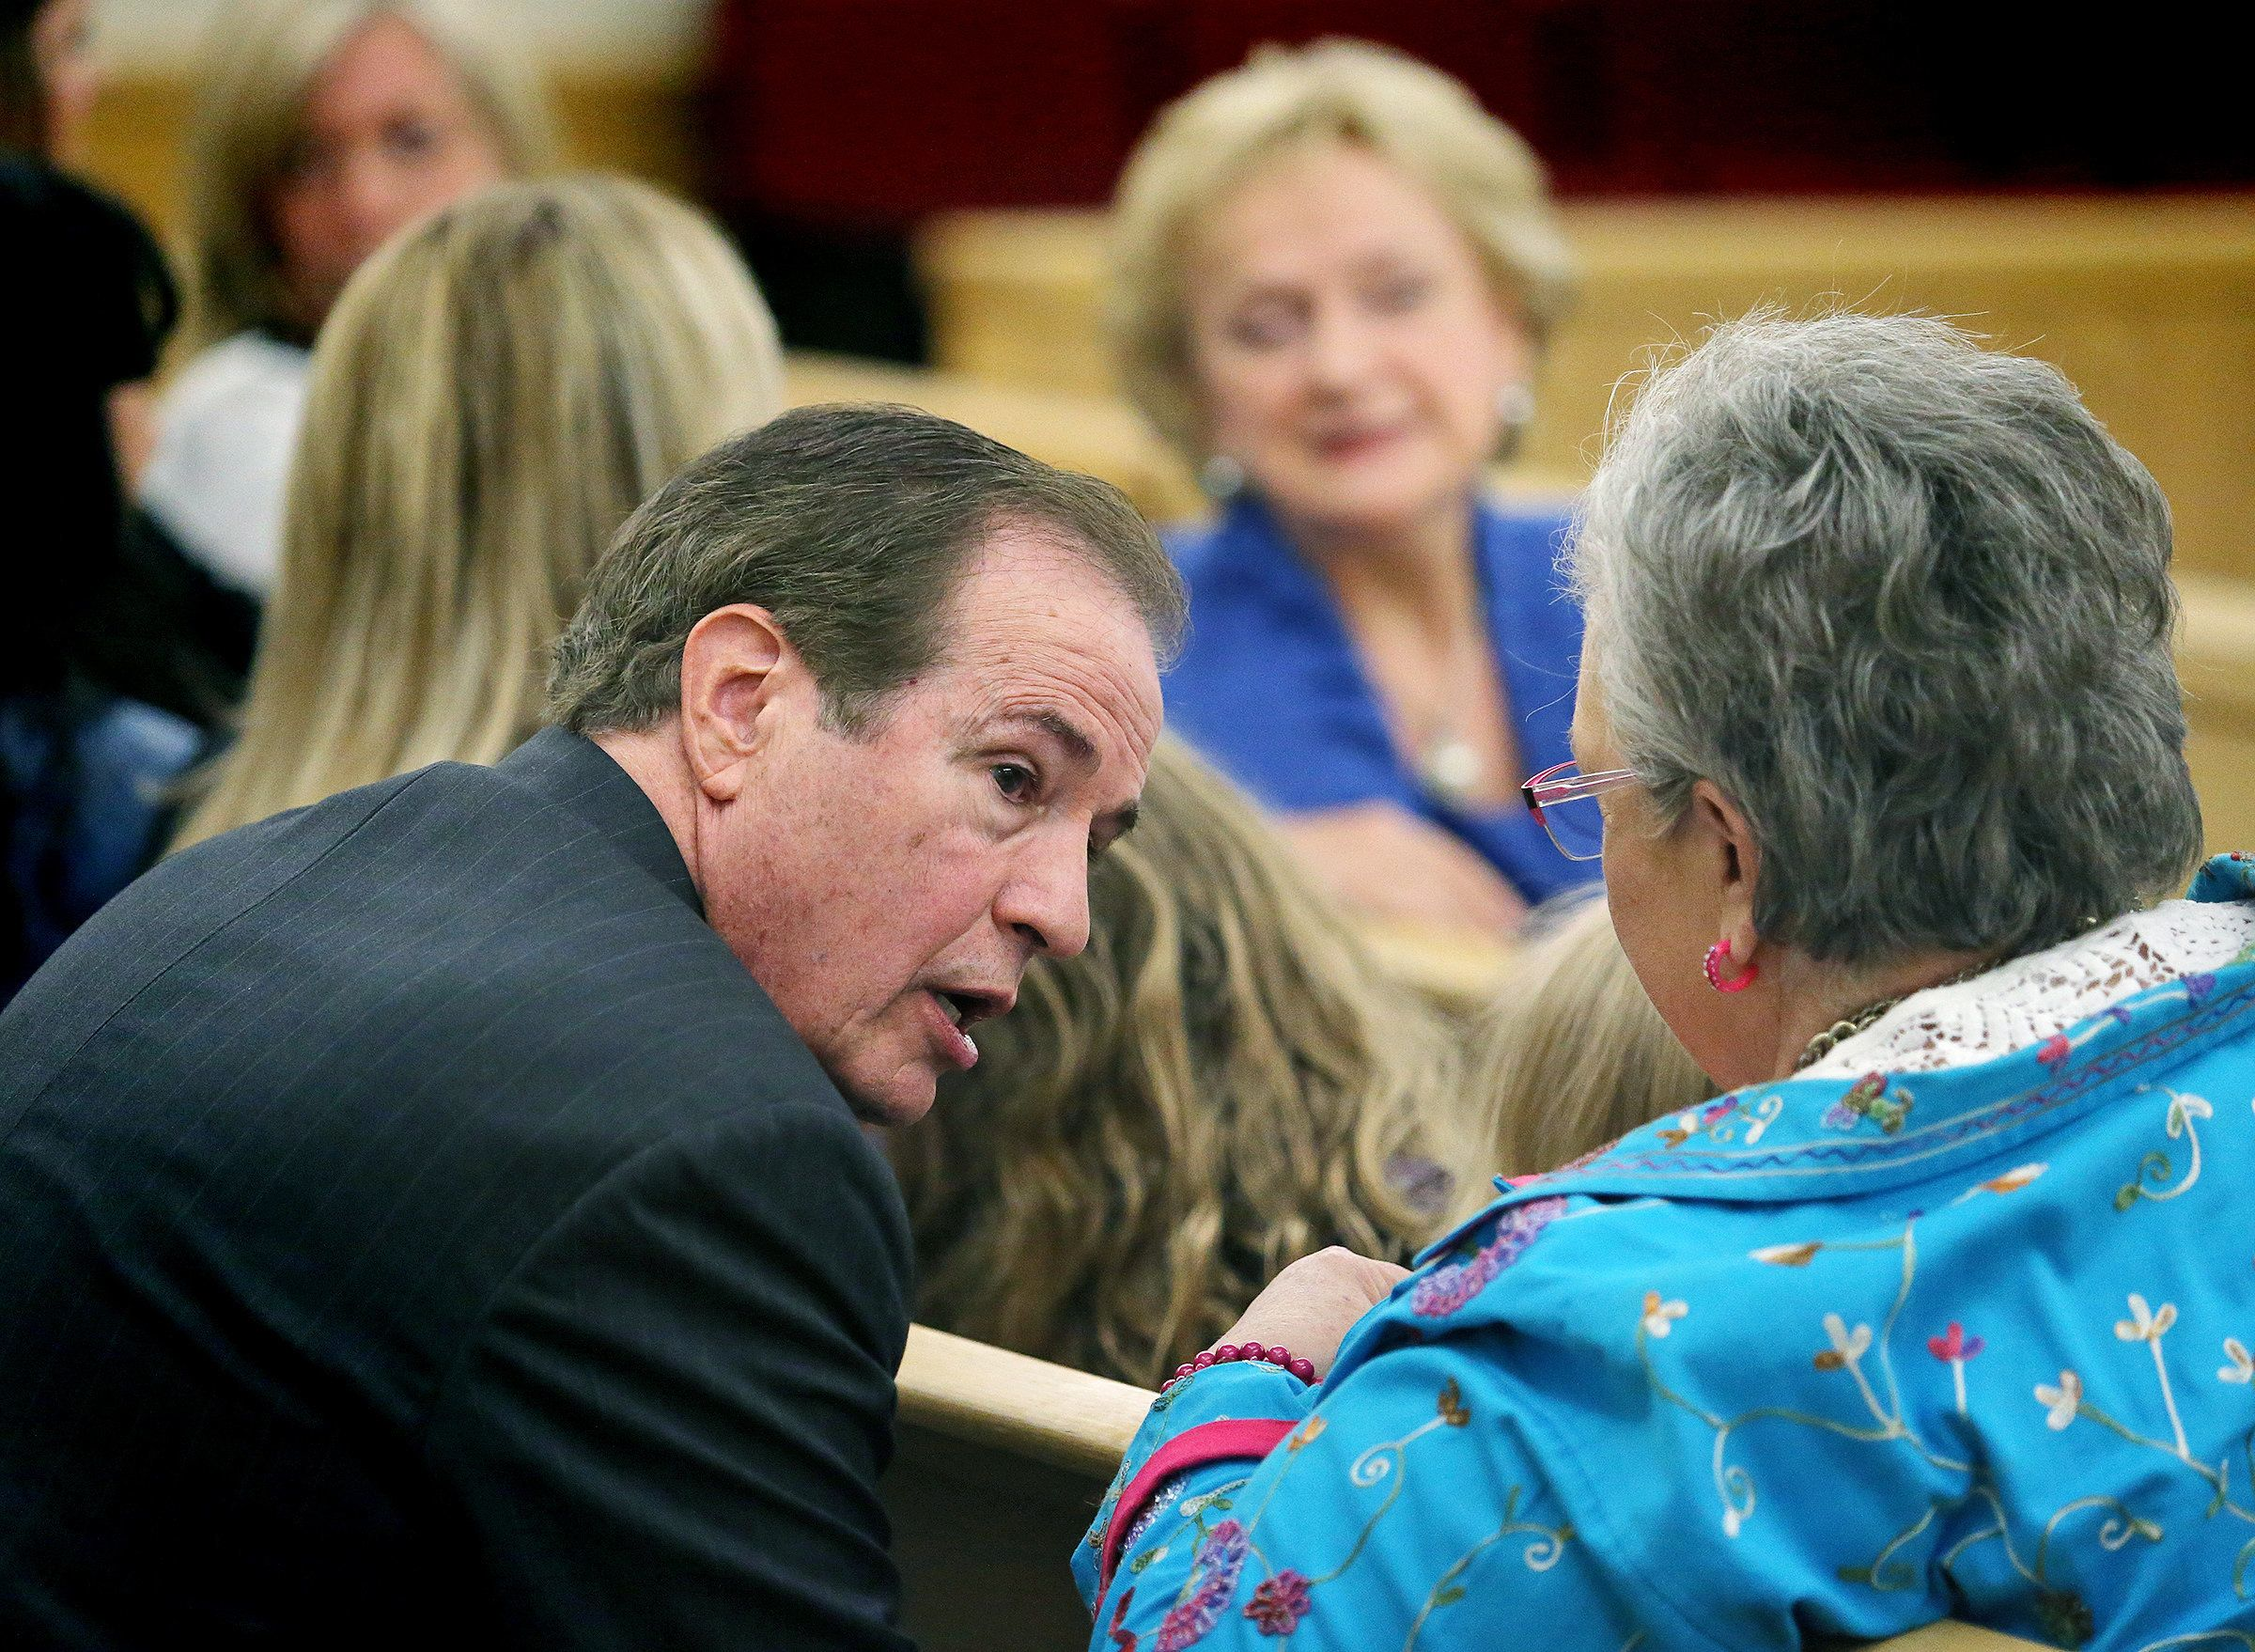 State Rep. Bill Zedler, left, Arlington- Dist 96, was in court to show support for Texas Attorney General Ken Paxton in Fort Worth, Thursday, Aug. 27, 2015. Paxton appeared for arraignment in State District Judge George Gallagher's court. He pleaded not guilty Thursday to charges alleging that he defrauded investors before he became the state's top lawyer, and his attorney Joe Kendall announced that he would no longer represent him. (Paul Moseley/Star-Telegram via AP, Pool)